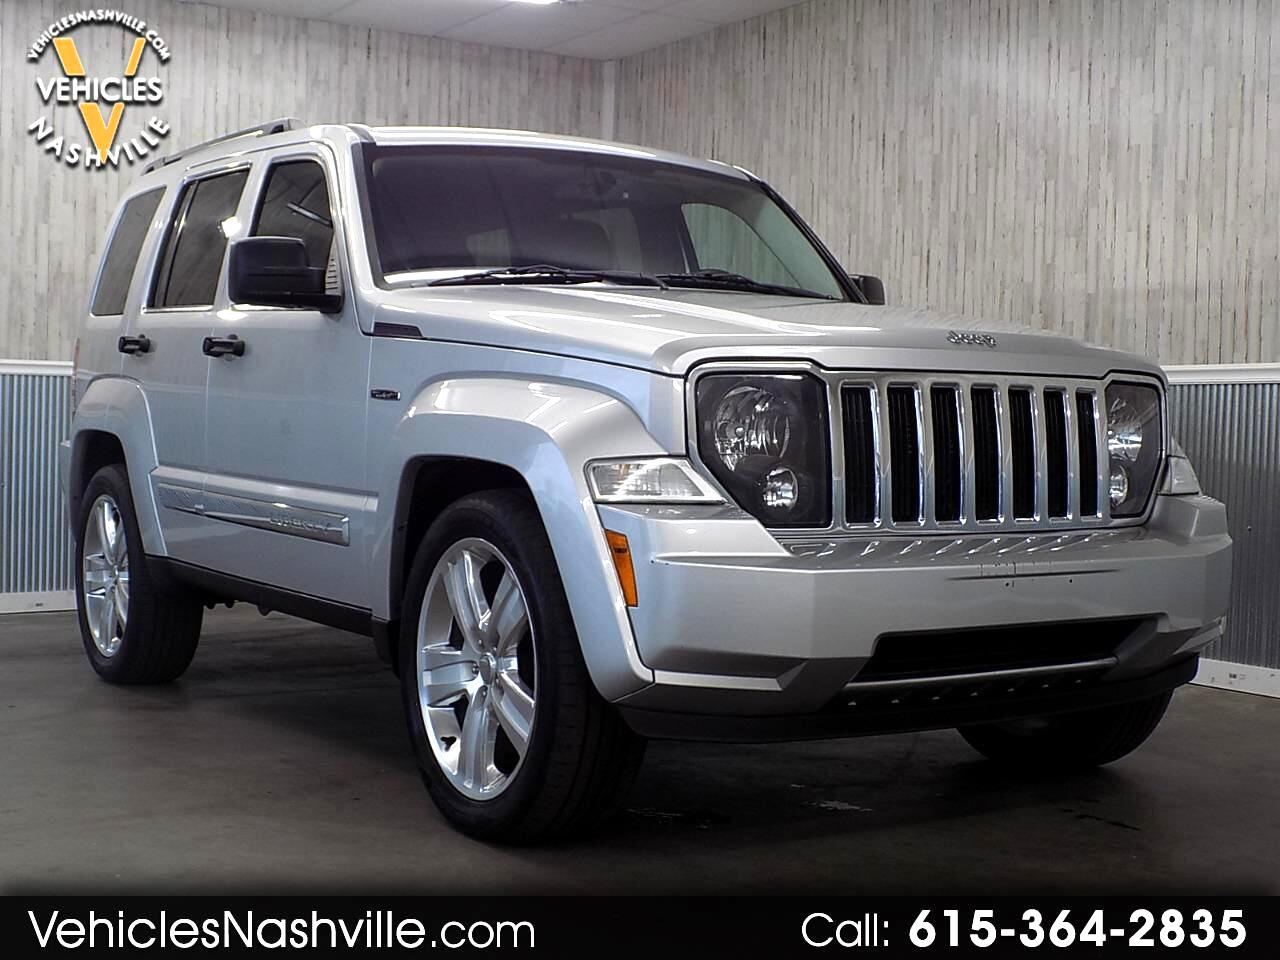 2012 Jeep Liberty Limited Jet 2WD